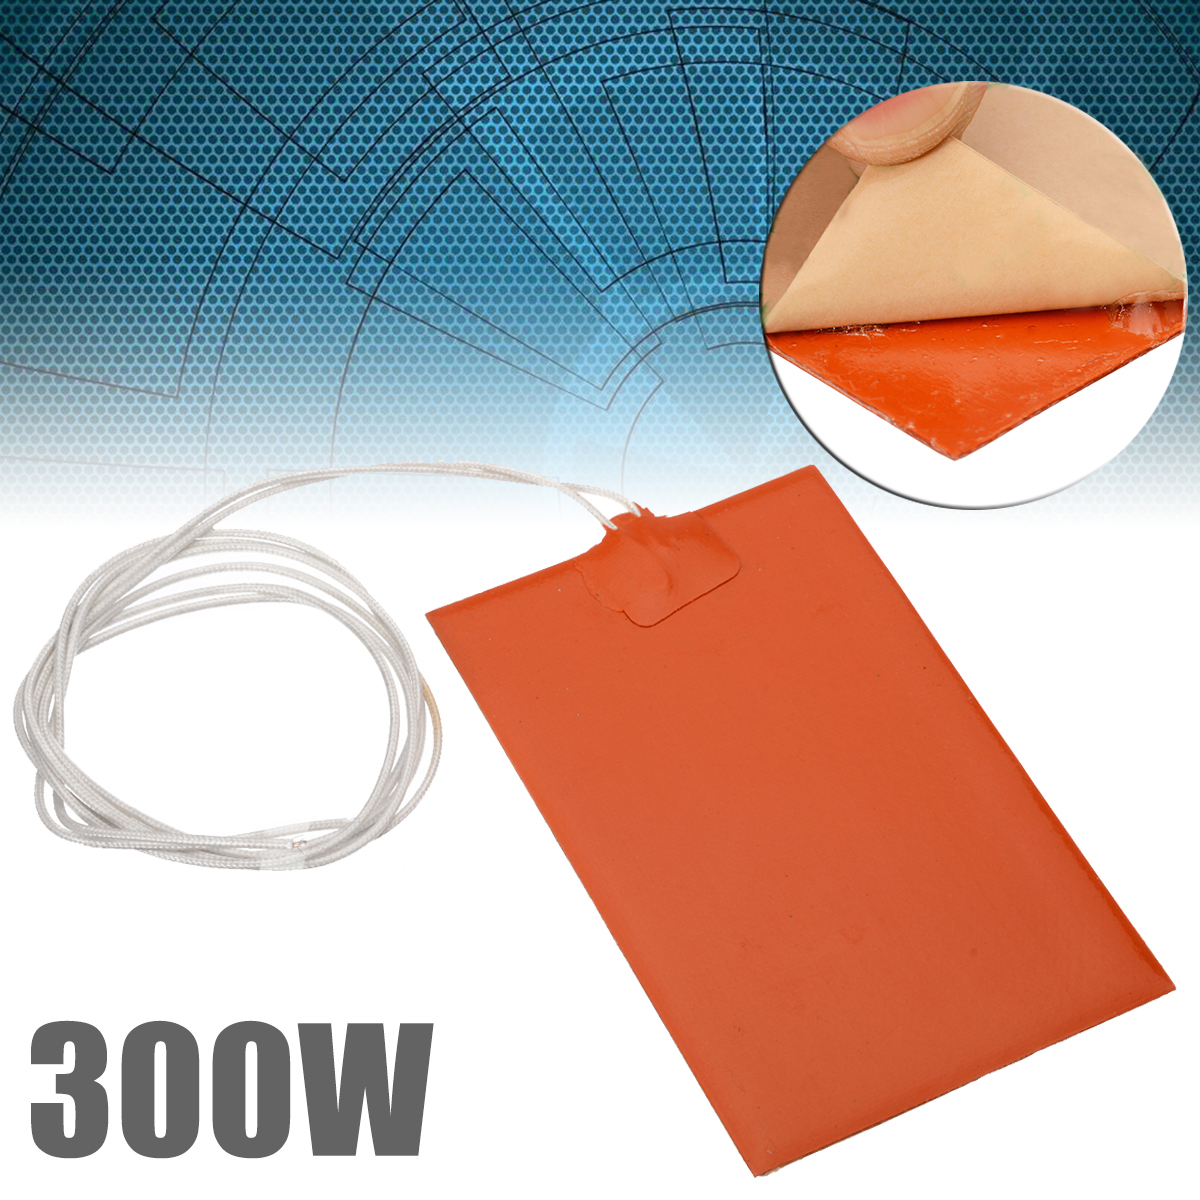 300W 220V Engine Oil Tank Silicone Heater Pad Universal Fuel Tank Water Tank Rubber Heating Mat Warming Accessories 10x15cm